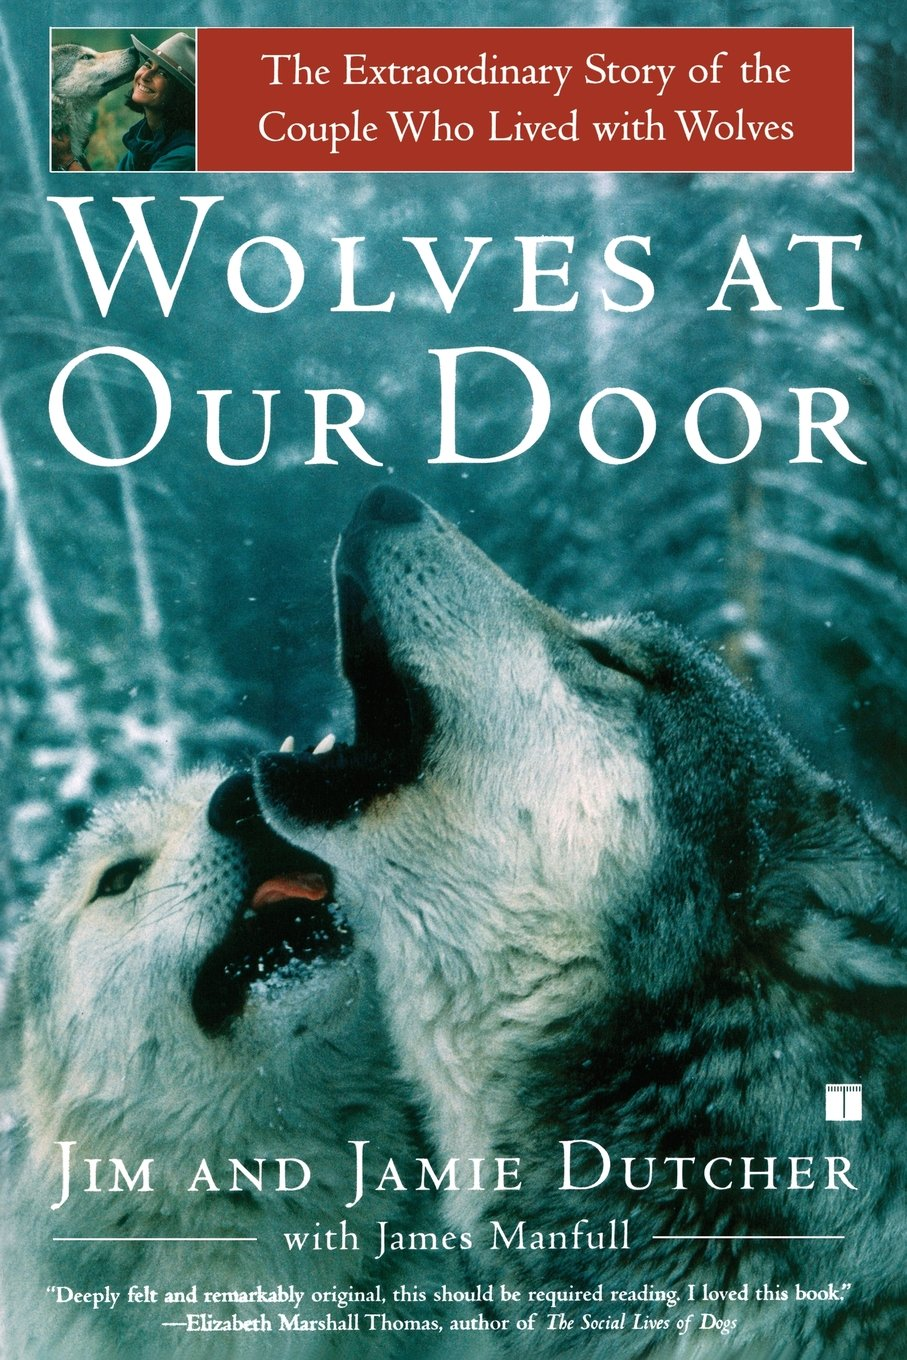 Wolves at Our Door: The Extraordinary Story of the Couple Who Lived with Wolves Paperback – February 11, 2003 Jim Dutcher Jamie Dutcher James Manfull Touchstone